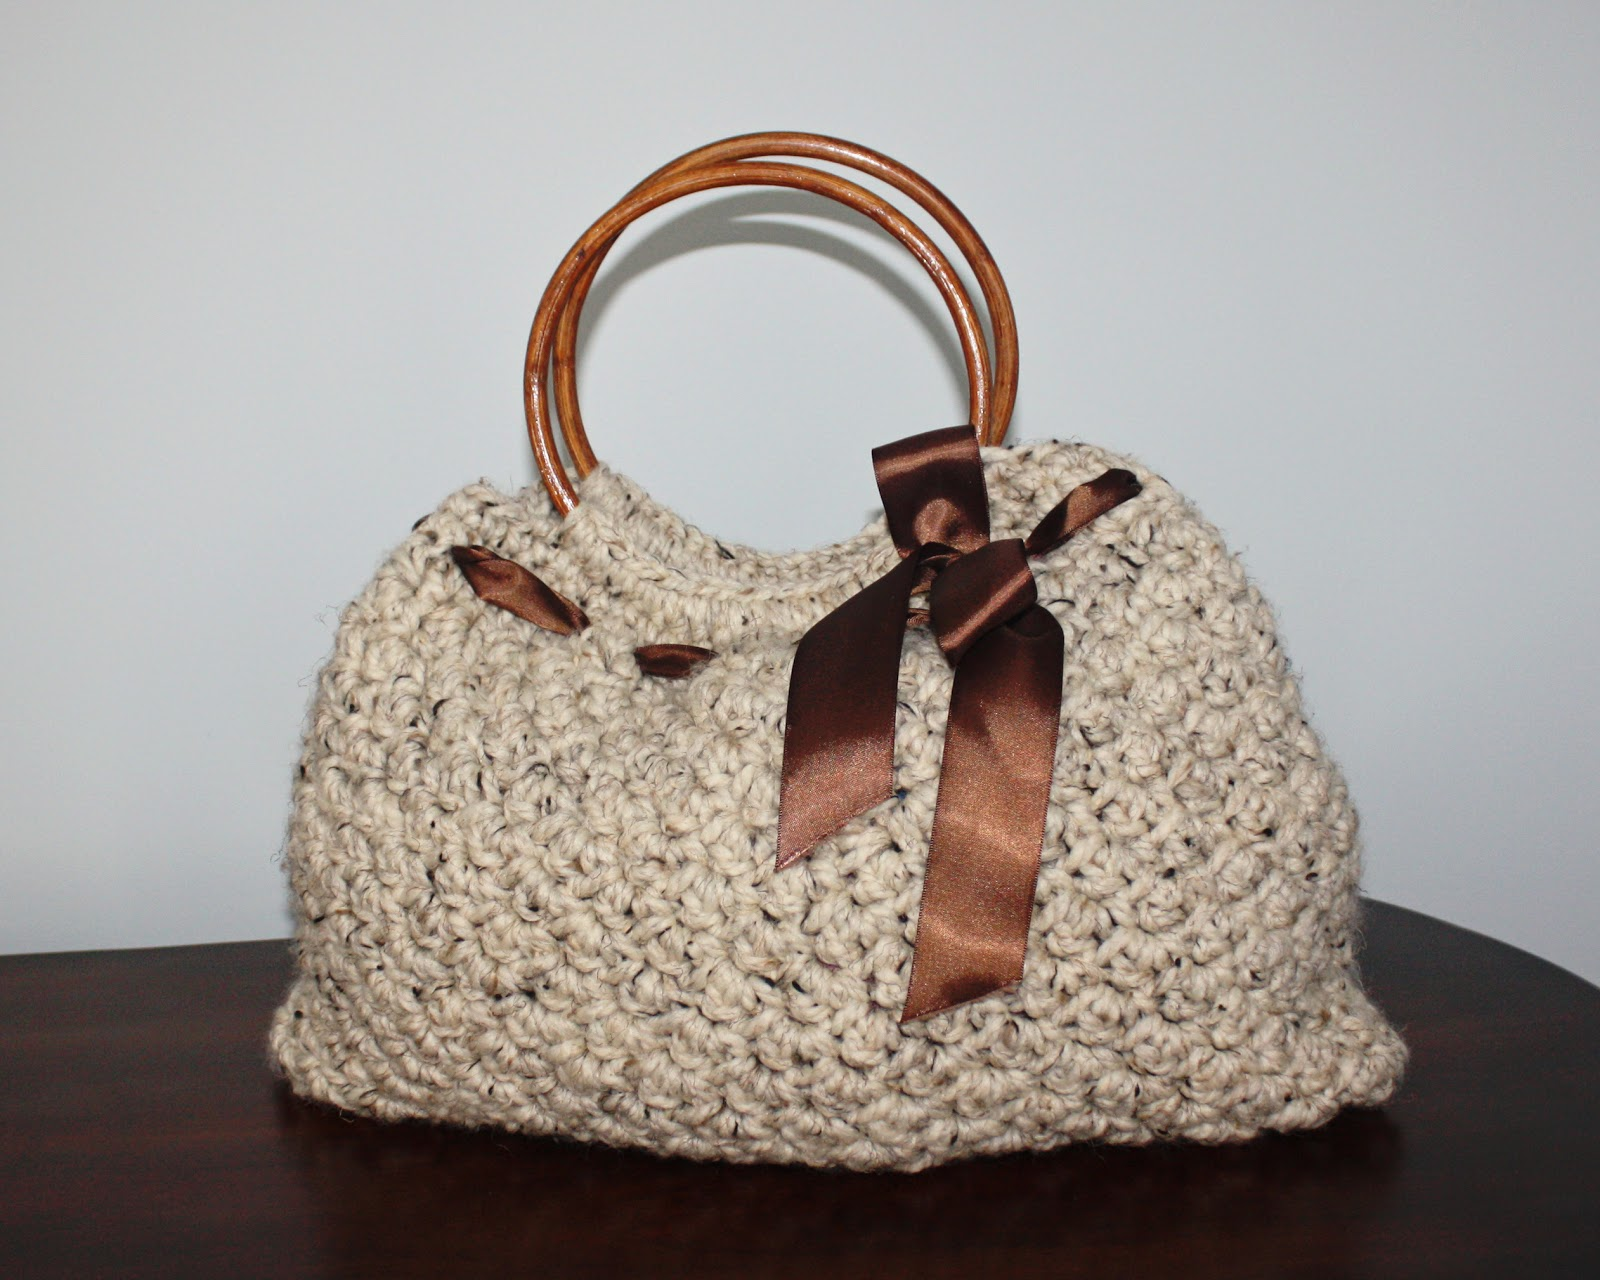 Crochet Patterns For Purses : Pretty Darn Adorable Crochet: Crochet Handbag/Purse